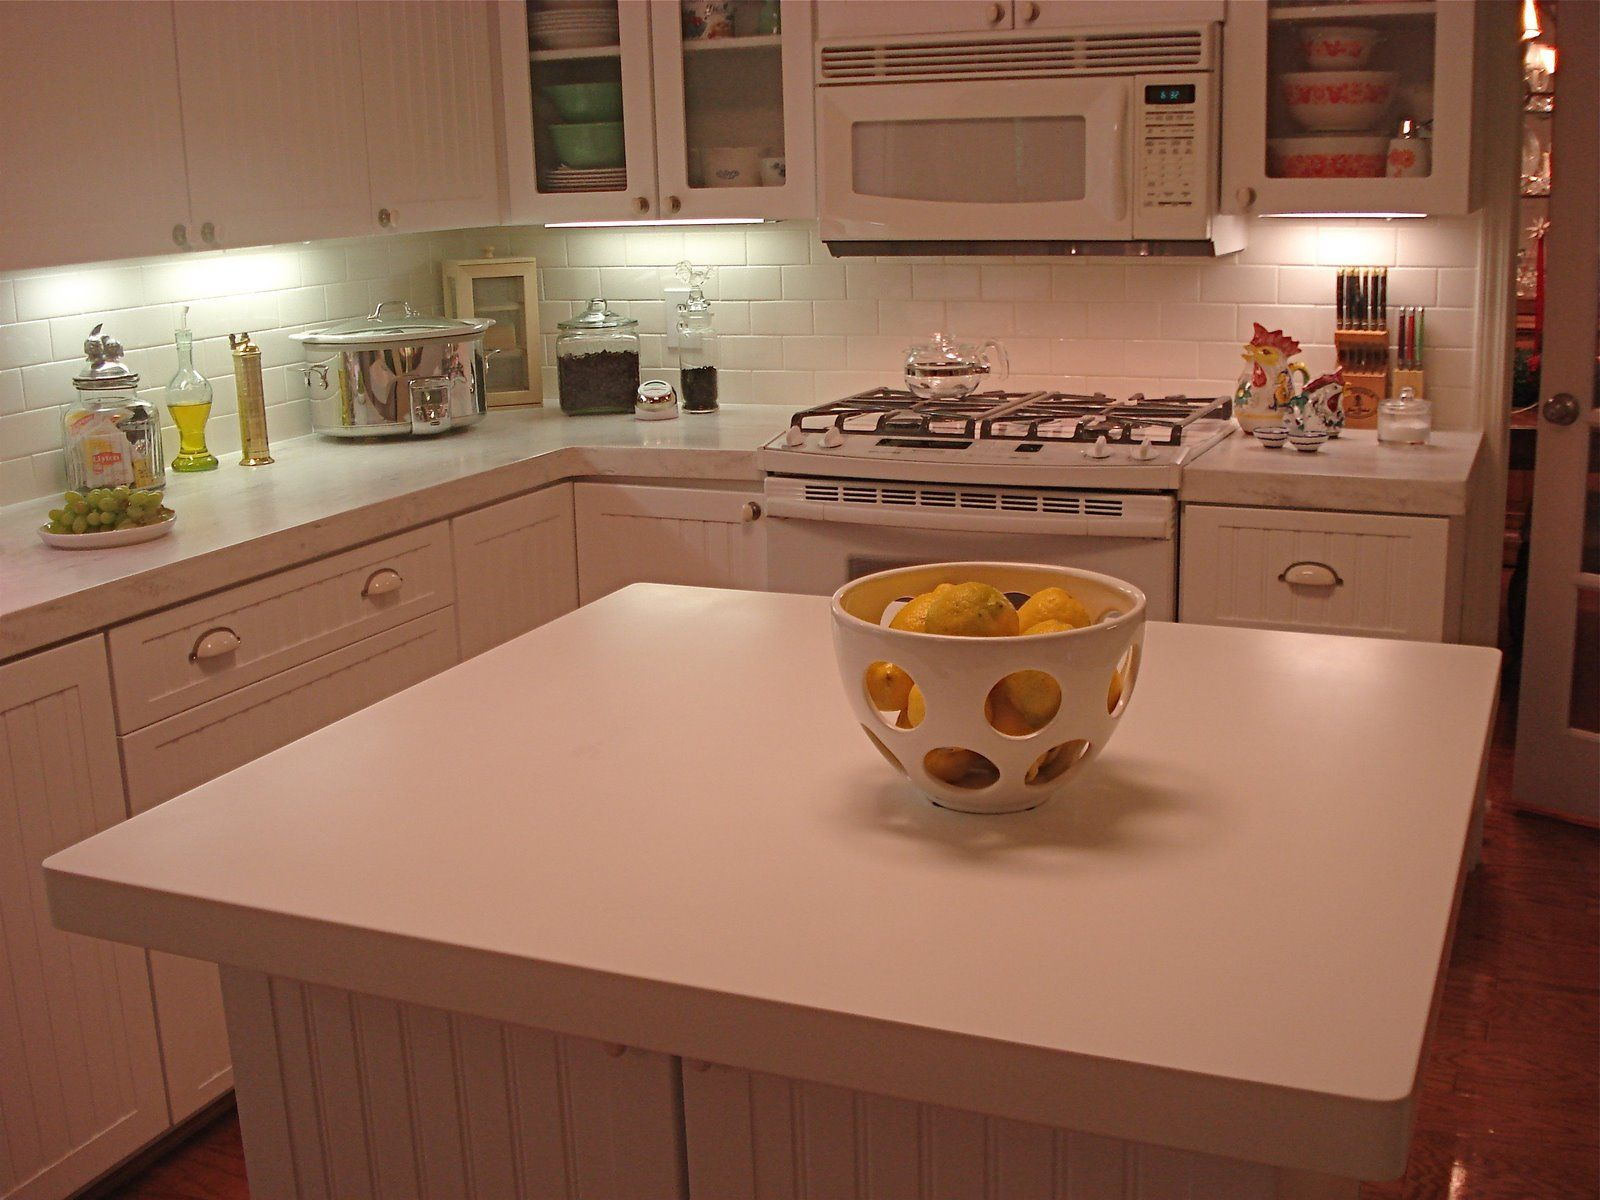 White Appliances And Corian Rain Cloud Countertops